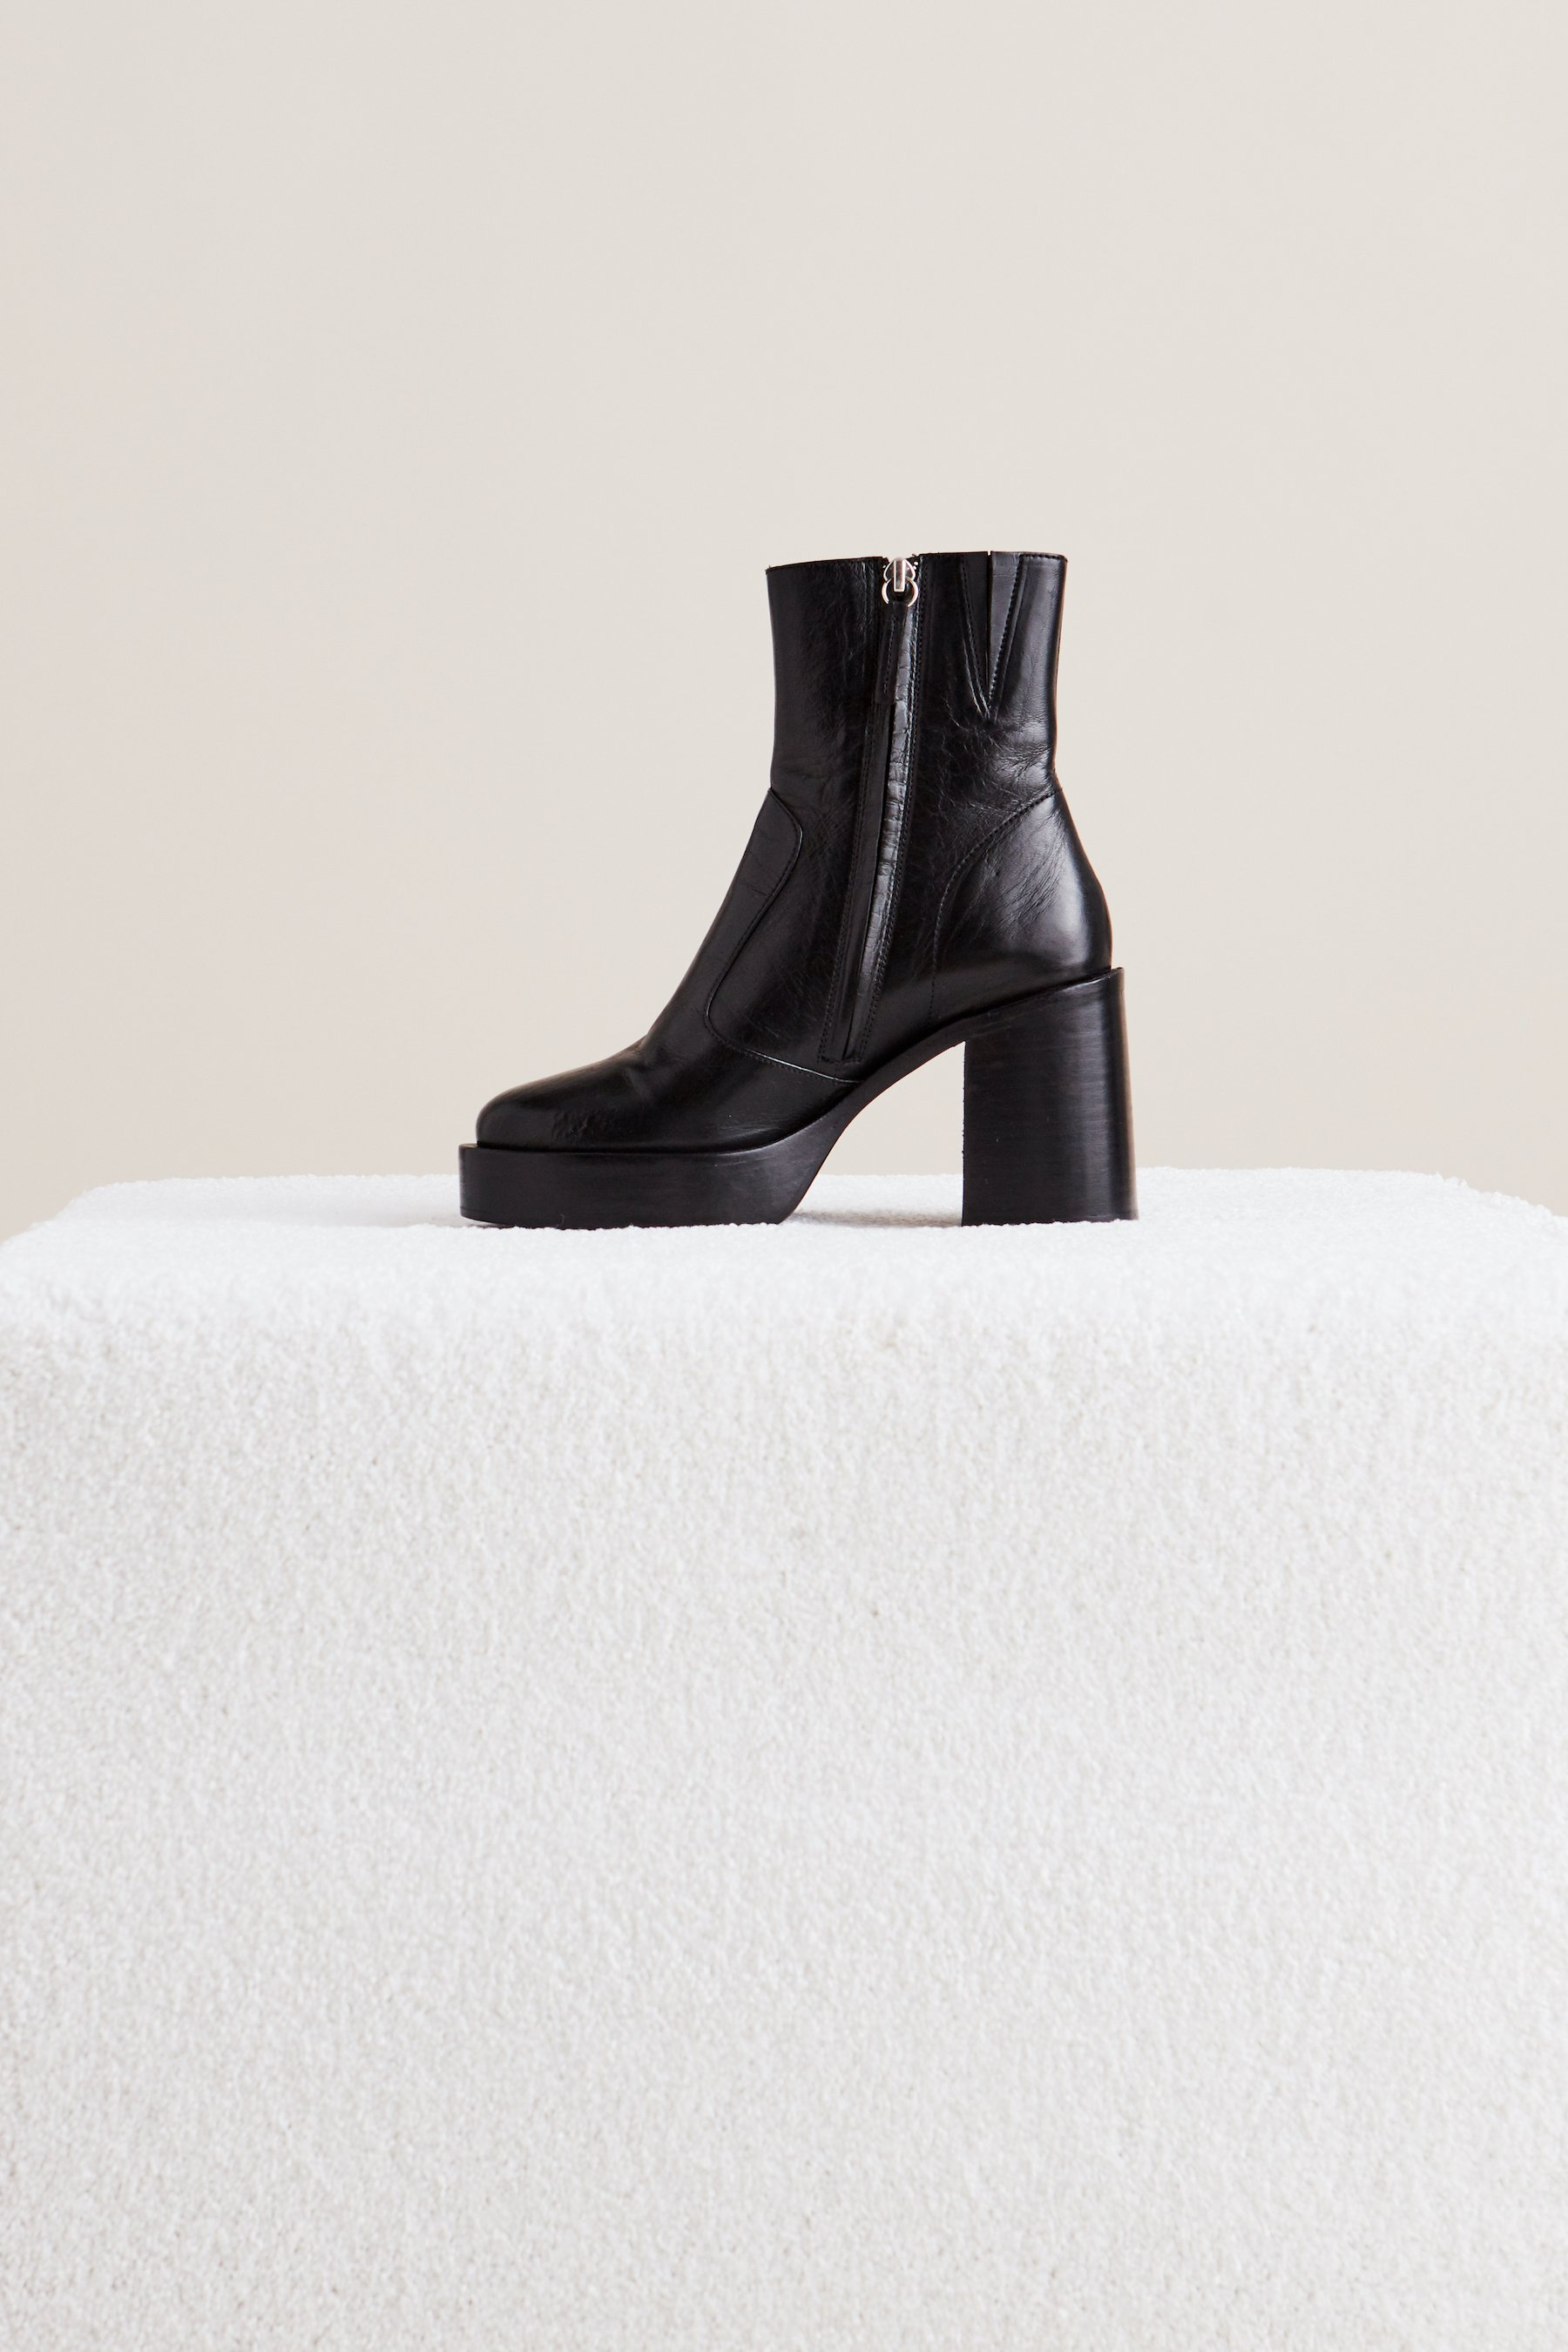 Low Raid Boot in Black by Simon Miller - 3